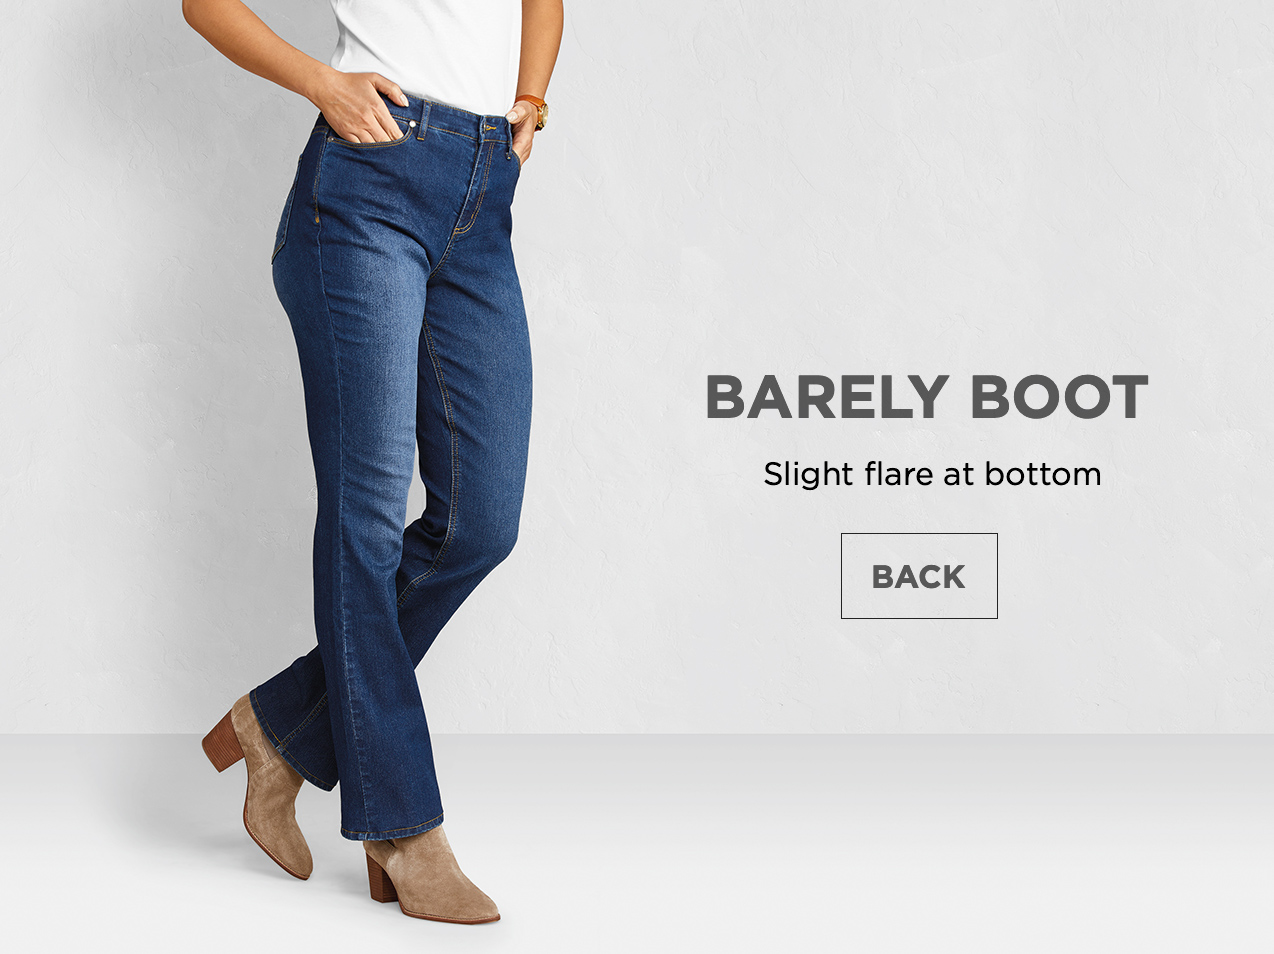 Barely Boot: Slight flare at the bottom.